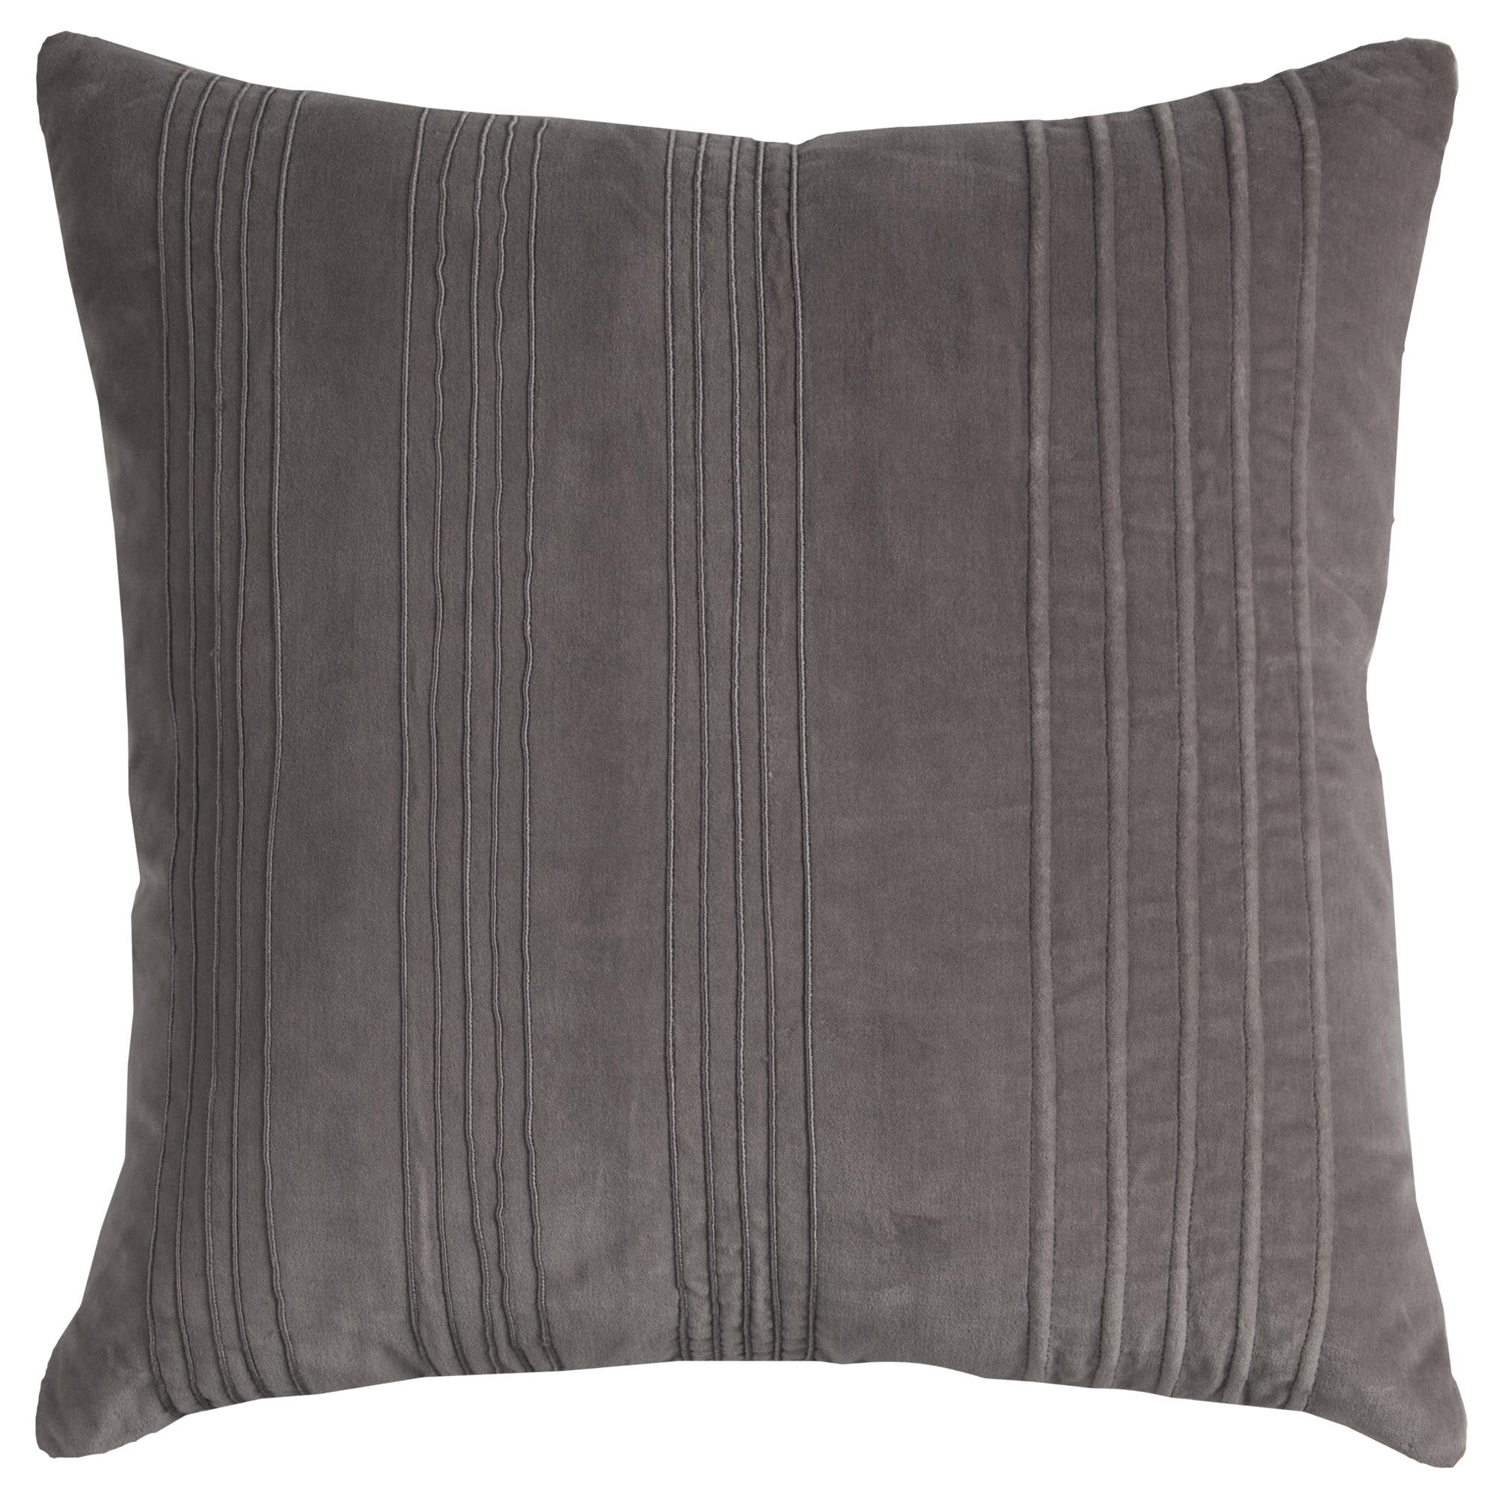 Solid Striped Dark Gray Throw Pillow